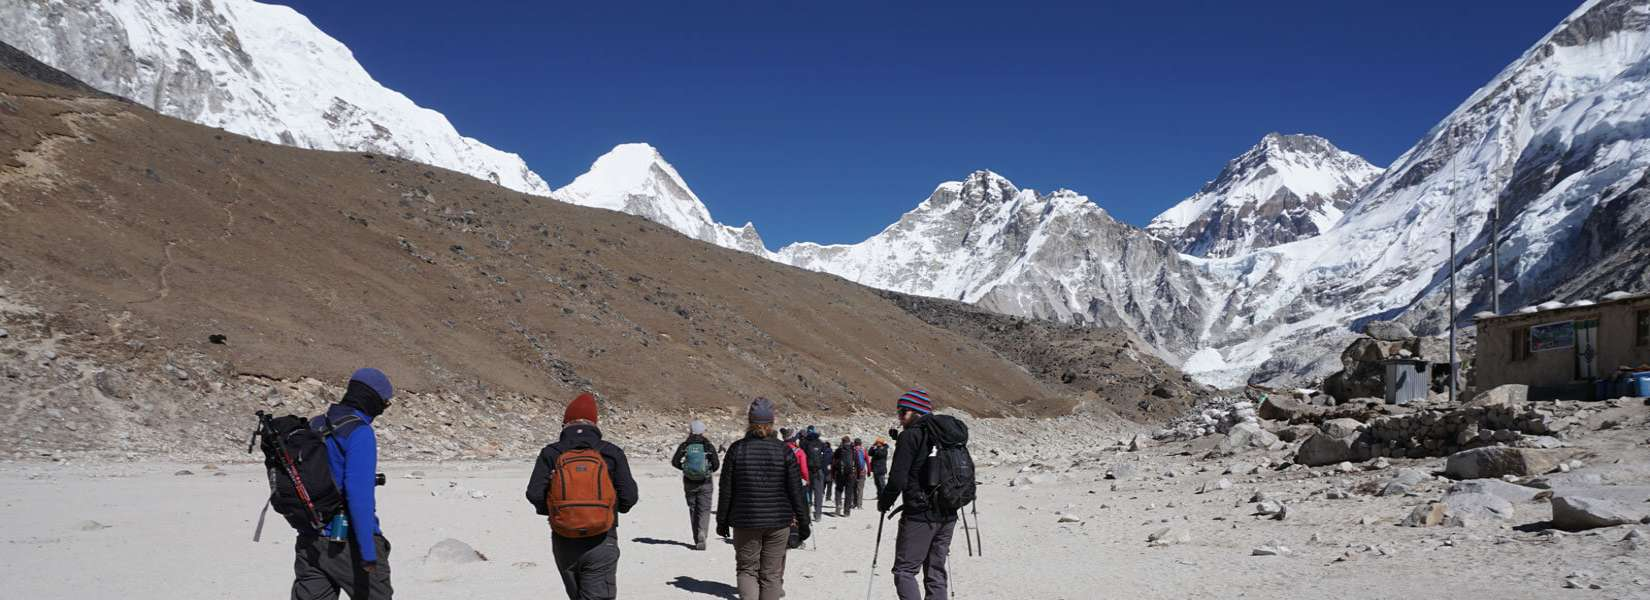 Trekkers walking towards Everest Base Camp